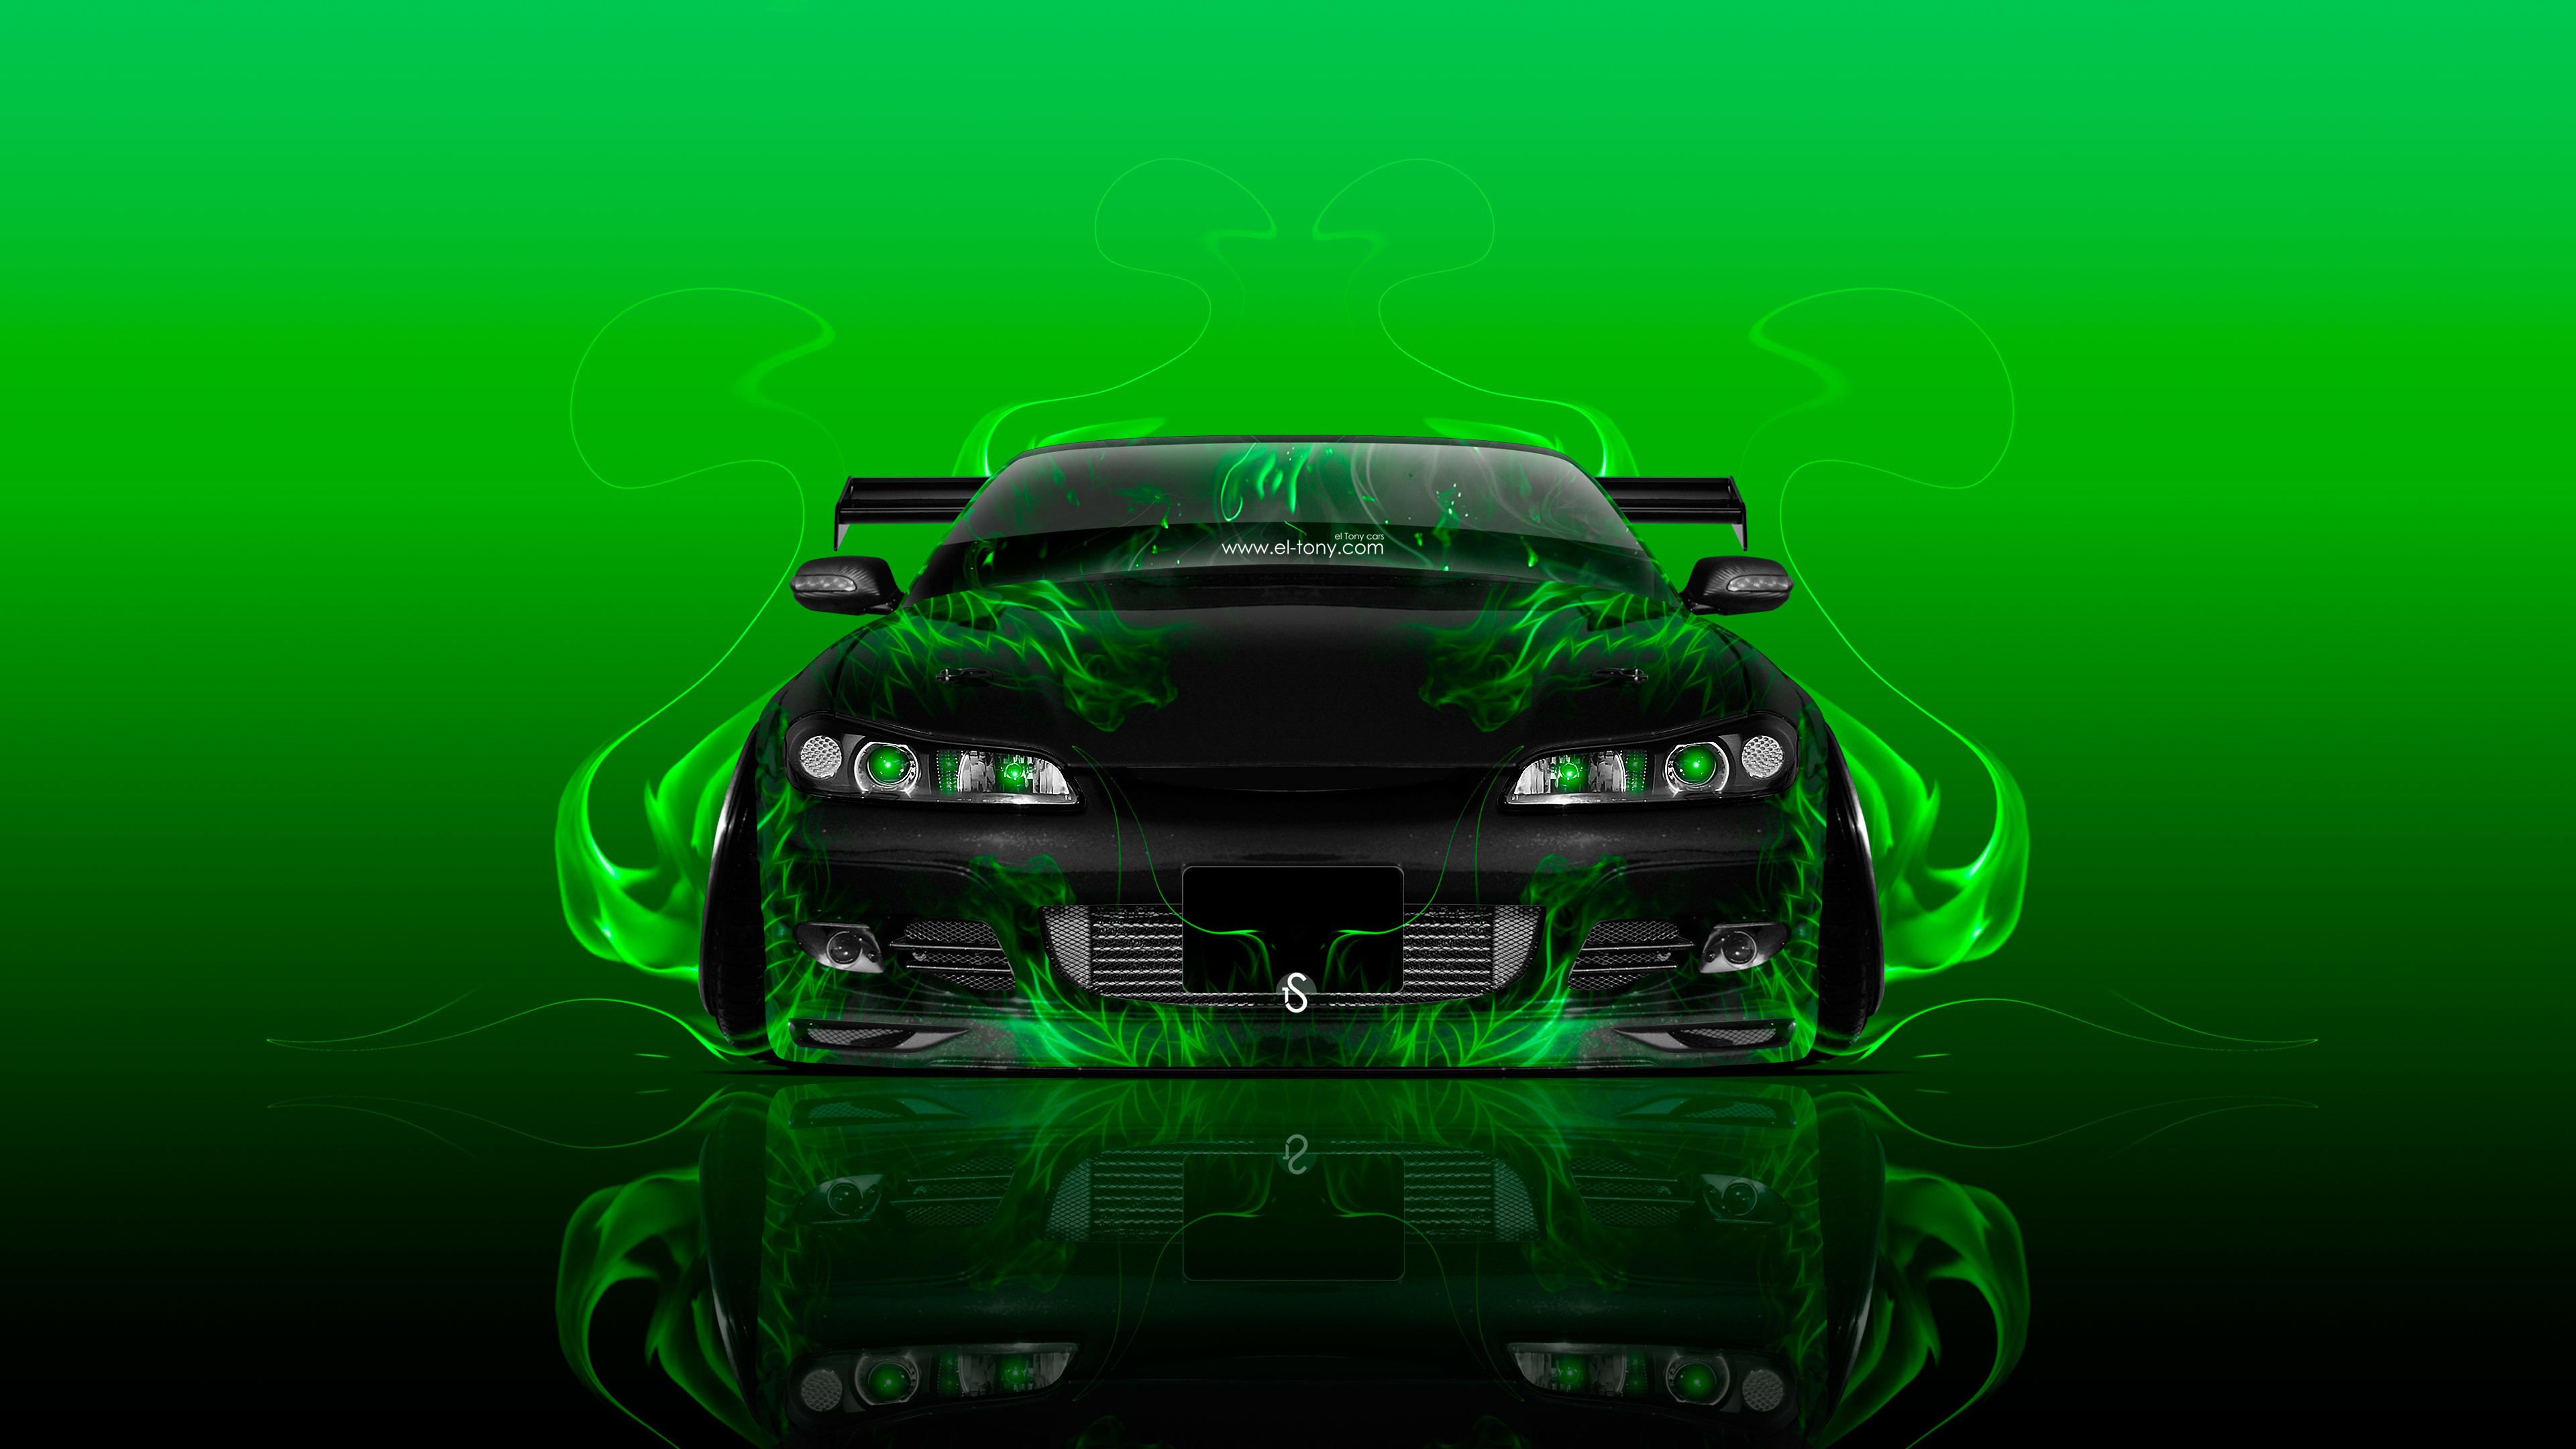 … Nissan-Silvia-S15-JDM-Tuning-Front-Fire-Flame- …